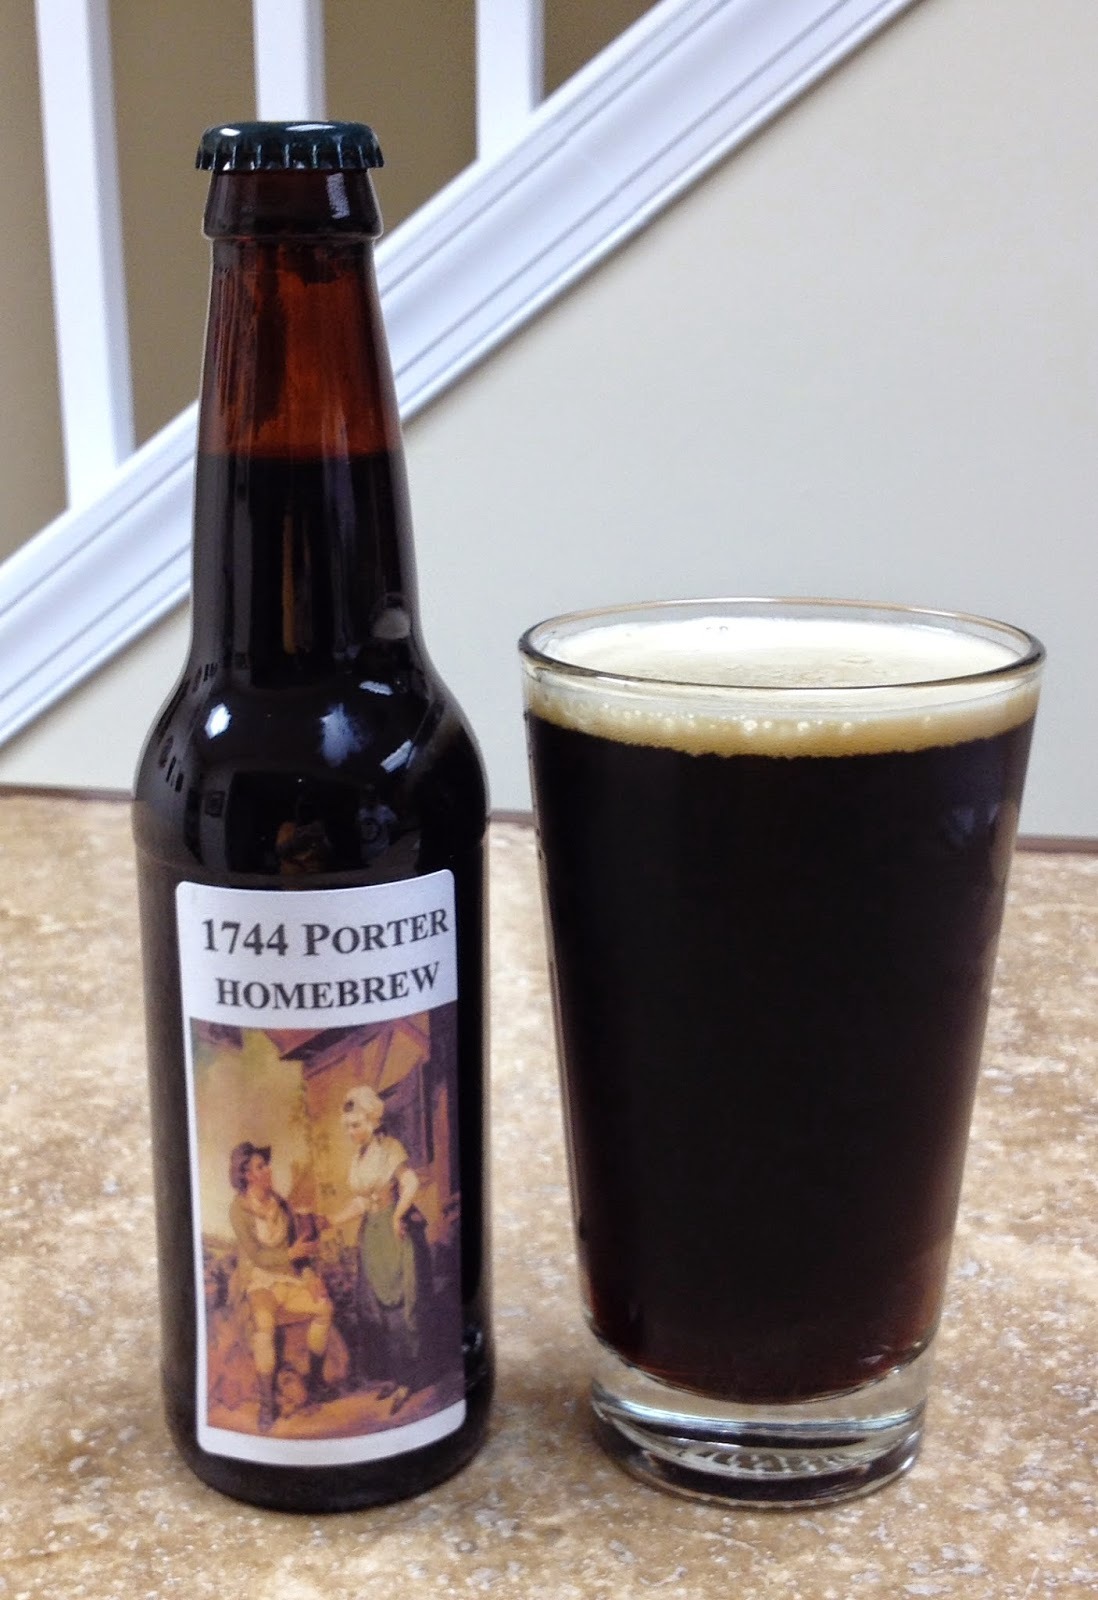 Le Meilleur Histocrats Recreating History Home Brewing A 1744 Porter Ce Mois Ci